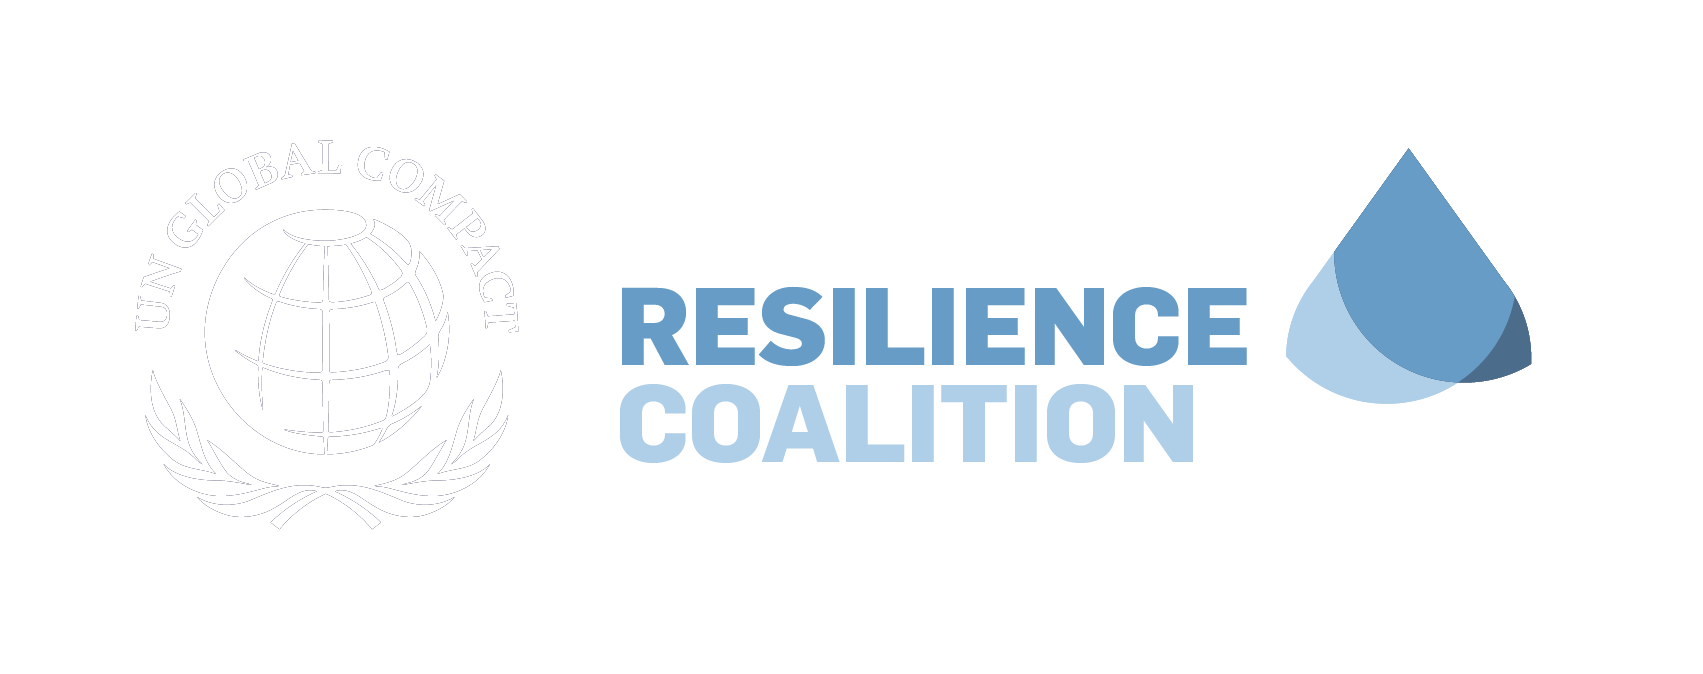 Water Resilience Coalition